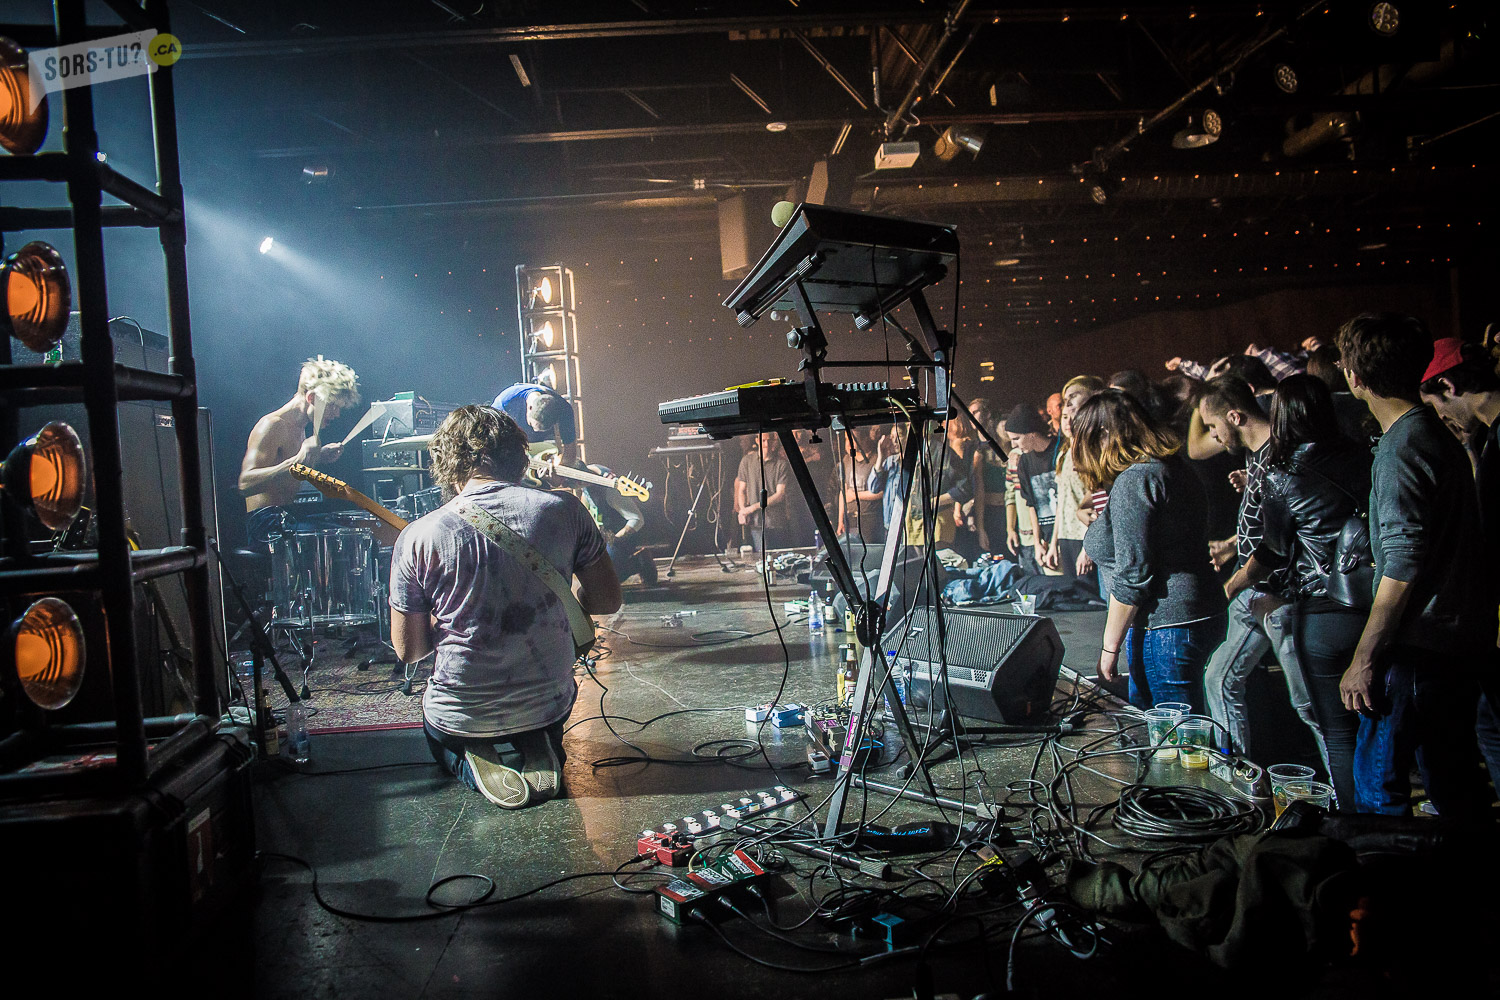 viet-cong-preoccupations-montreal-2016-crsloiselle-3980